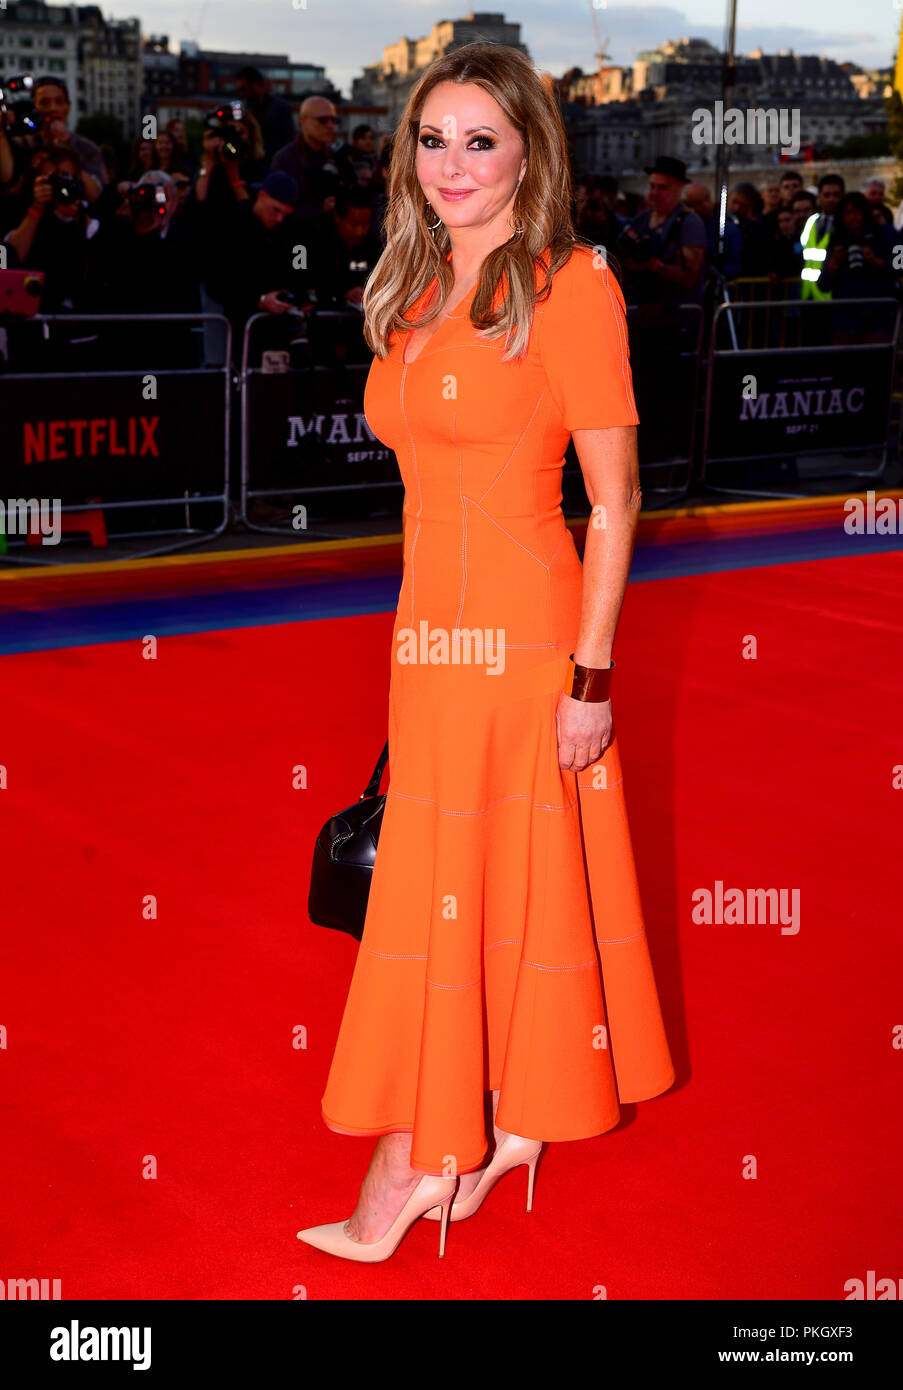 Carol Vorderman attending the Maniac World Premiere at the Southbank Centre, London. - Stock Image